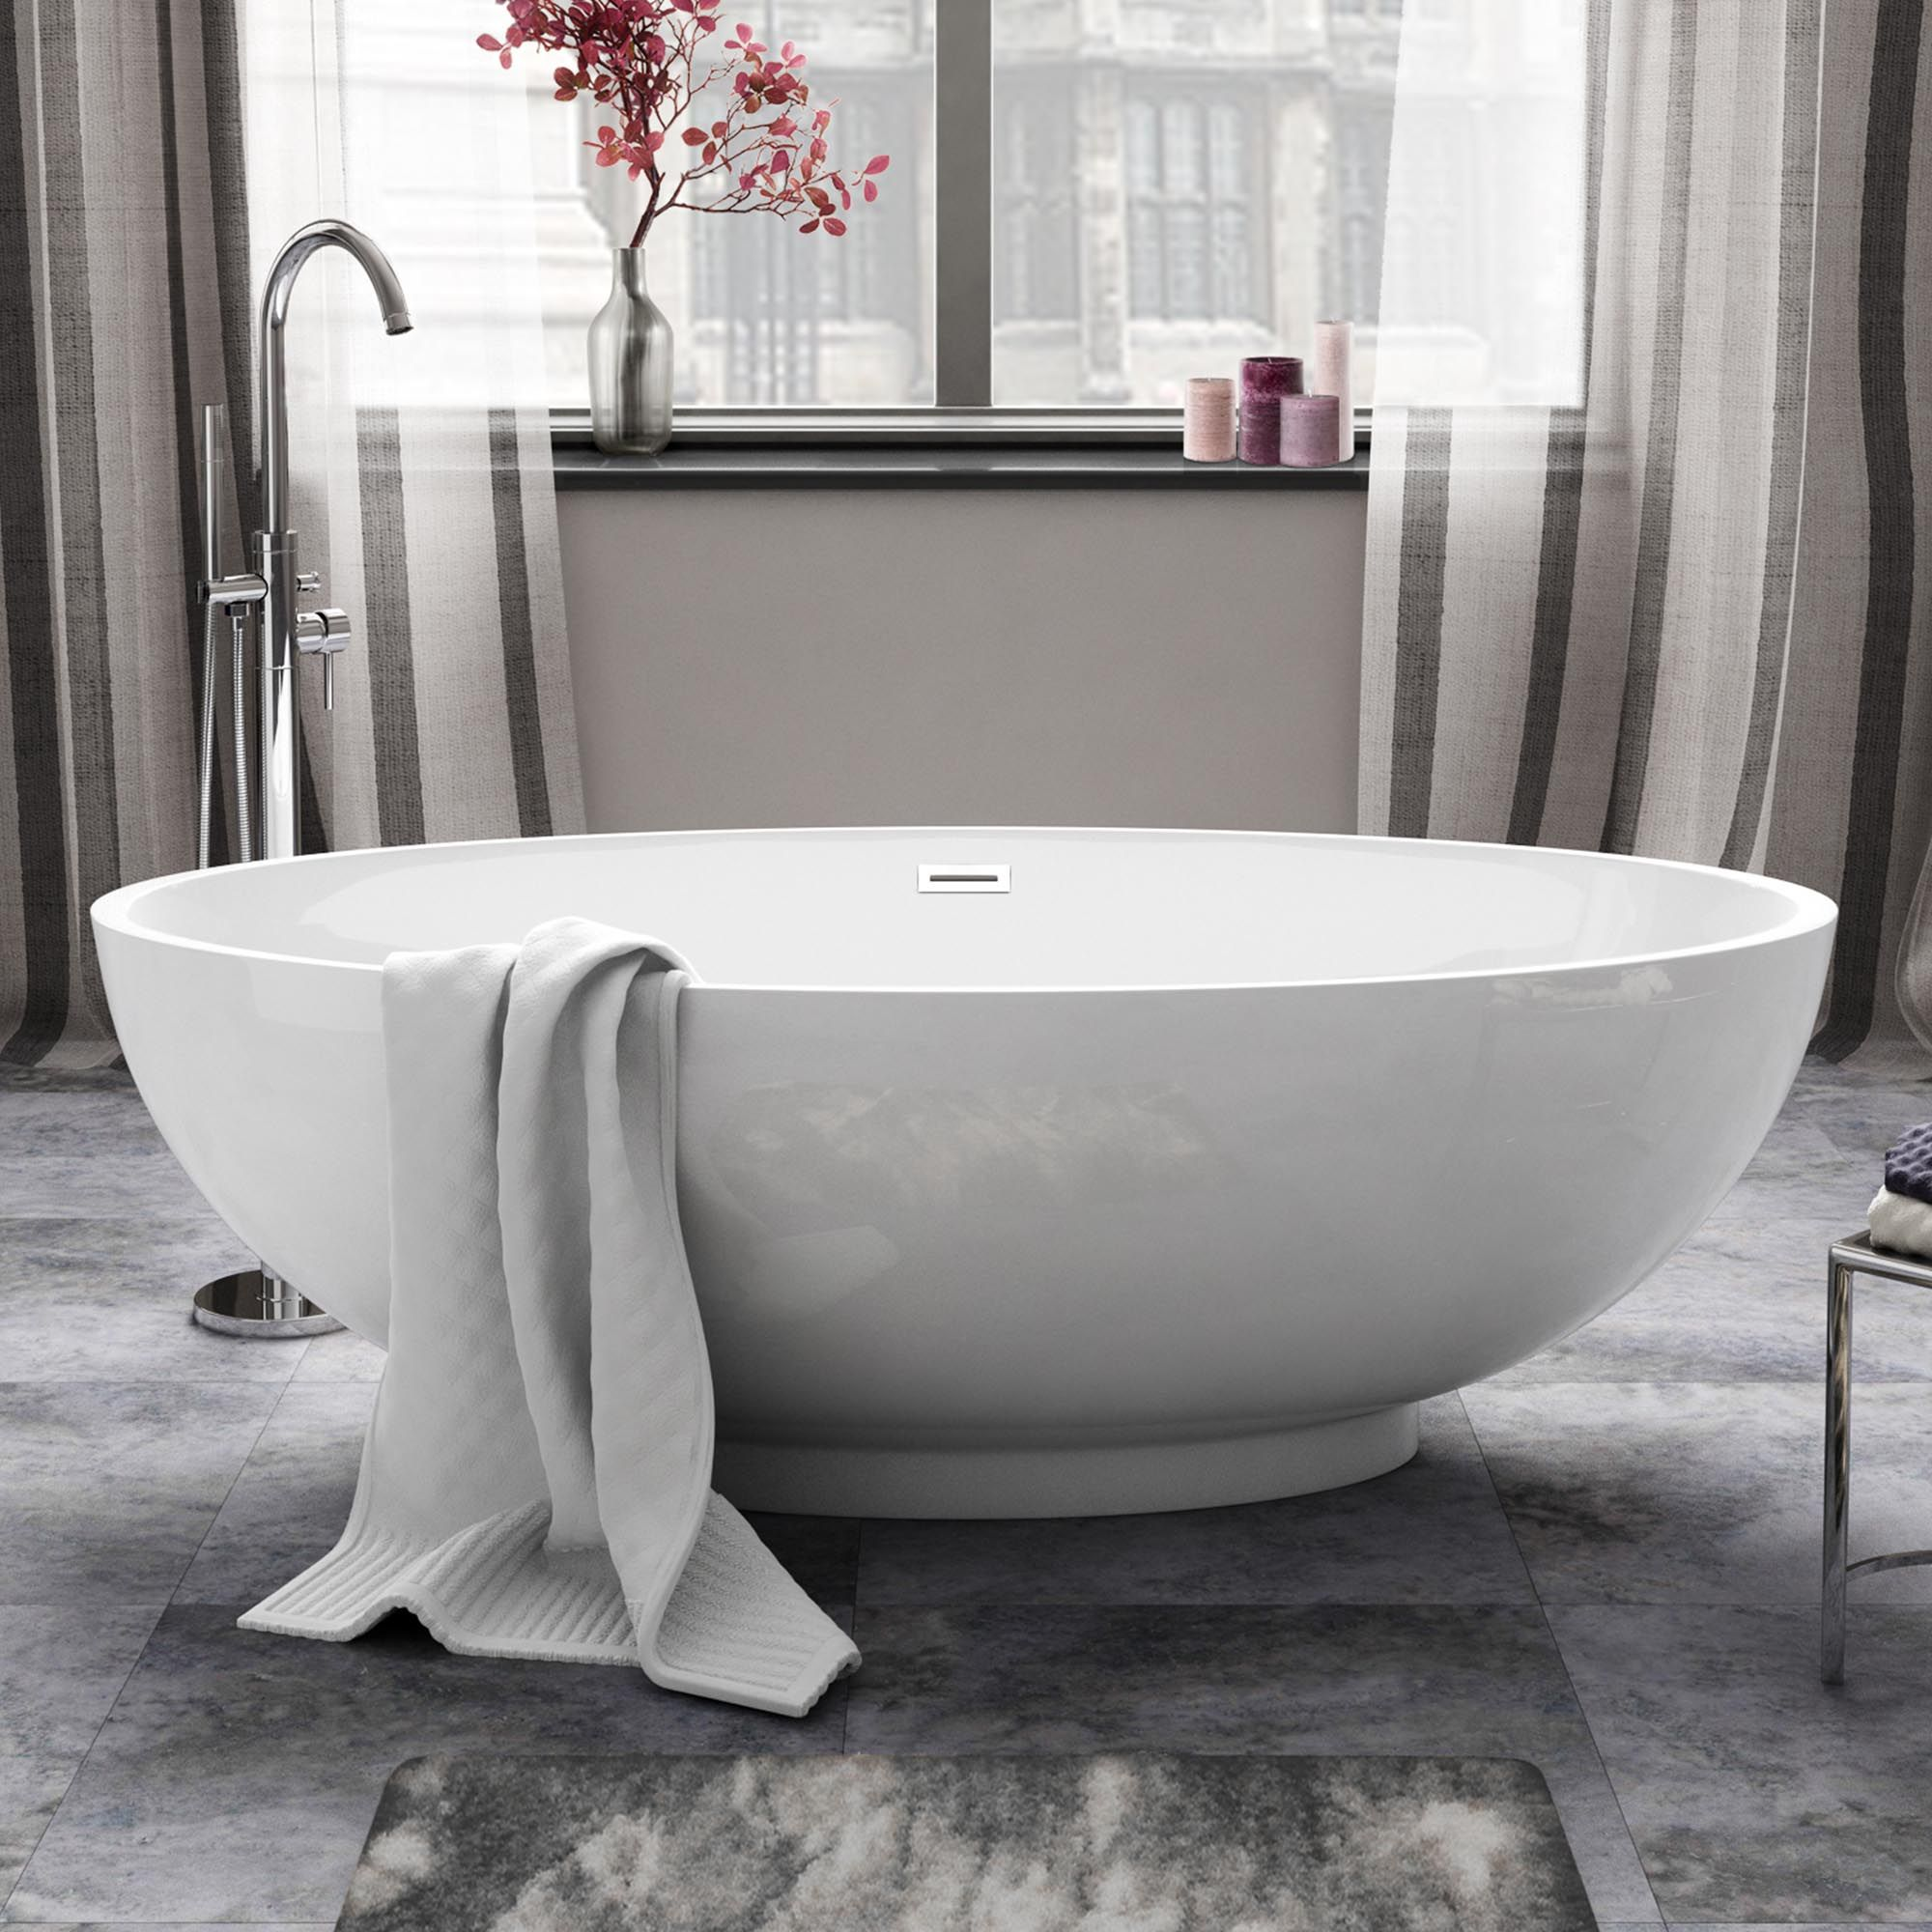 Bath Empire Bath New Bathroom Pinterest Roll Top